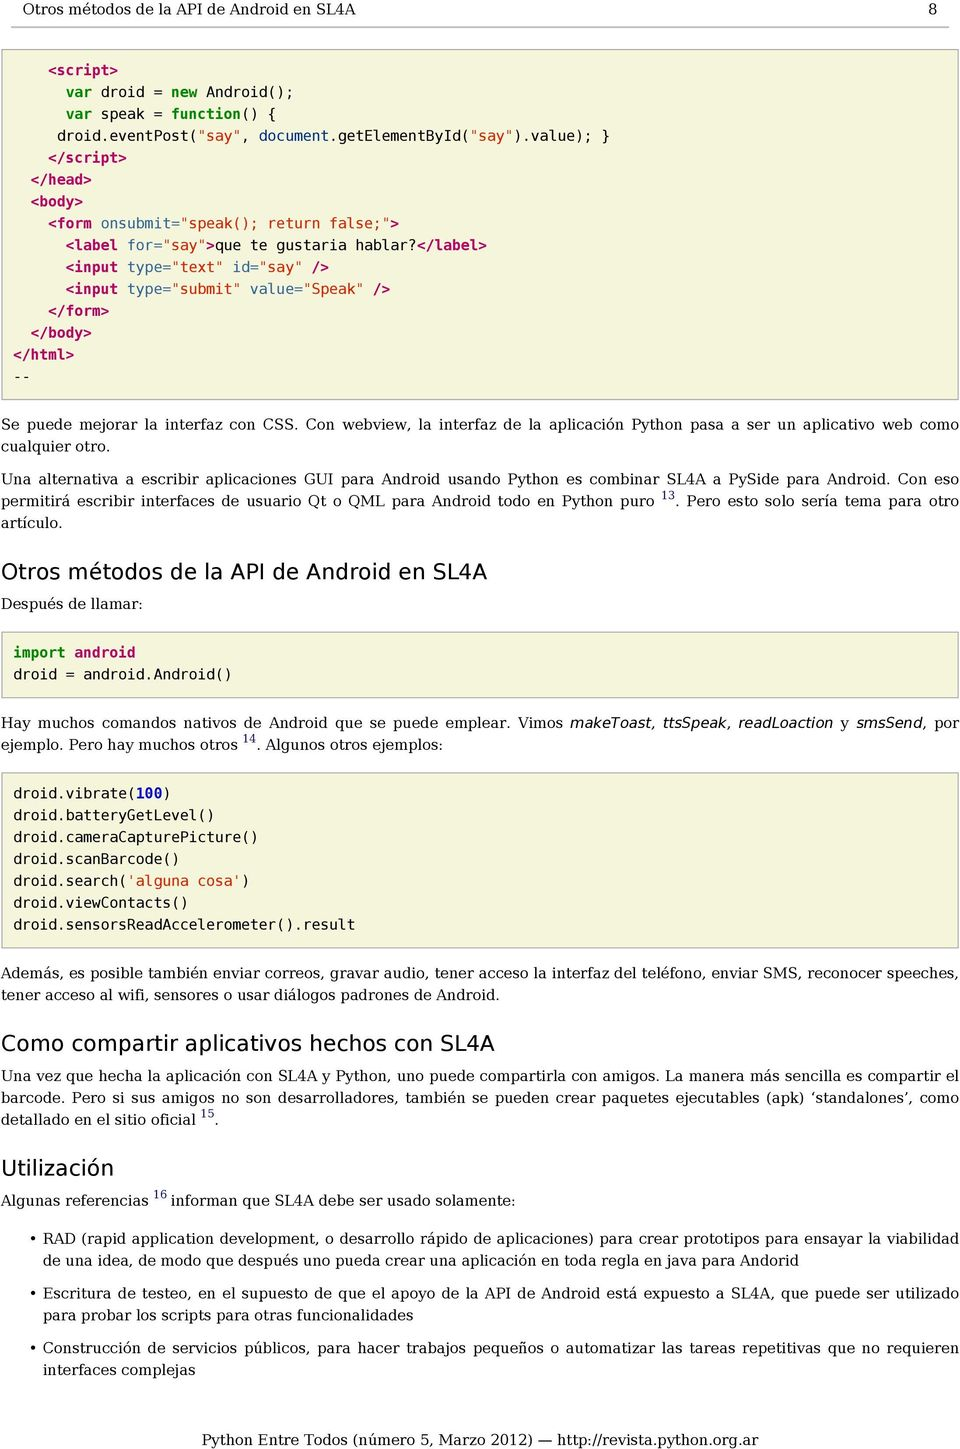 "</label> <input type=""text"" id=""say"" /> <input type=""submit"" value=""speak"" /> </form> </body> </html> -- Se puede mejorar la interfaz con CSS."